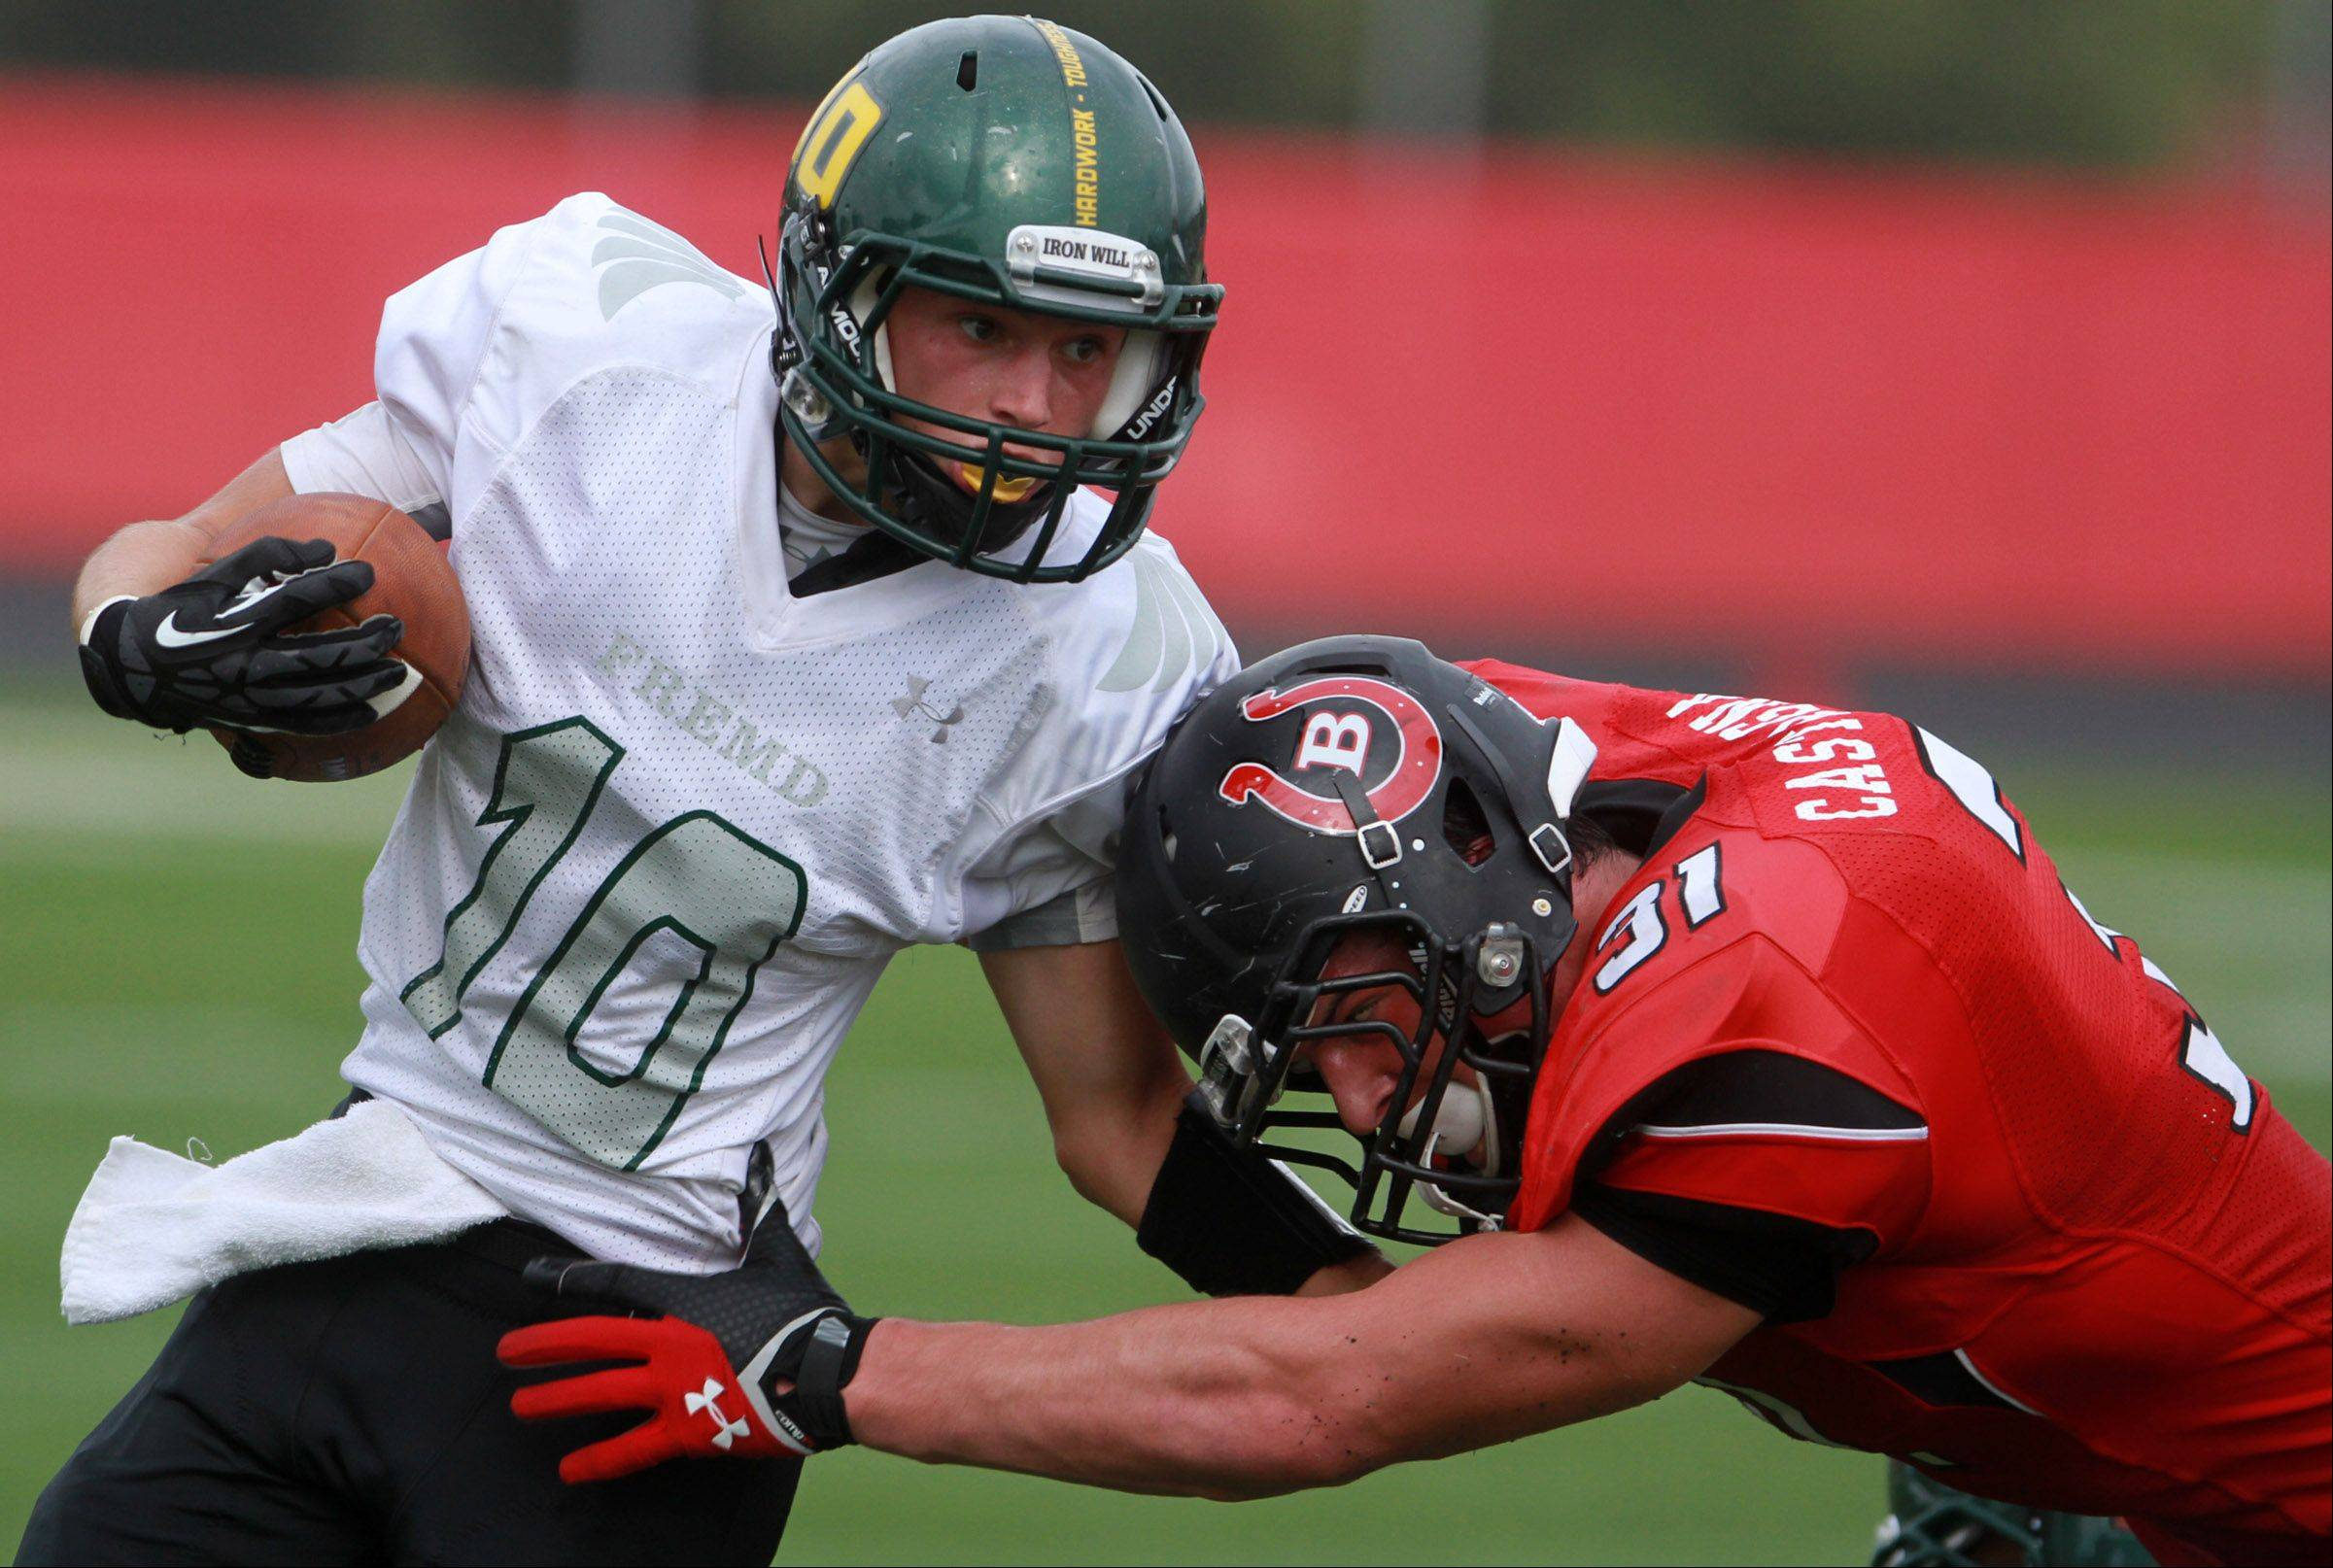 Images: Barrington vs. Fremd, football